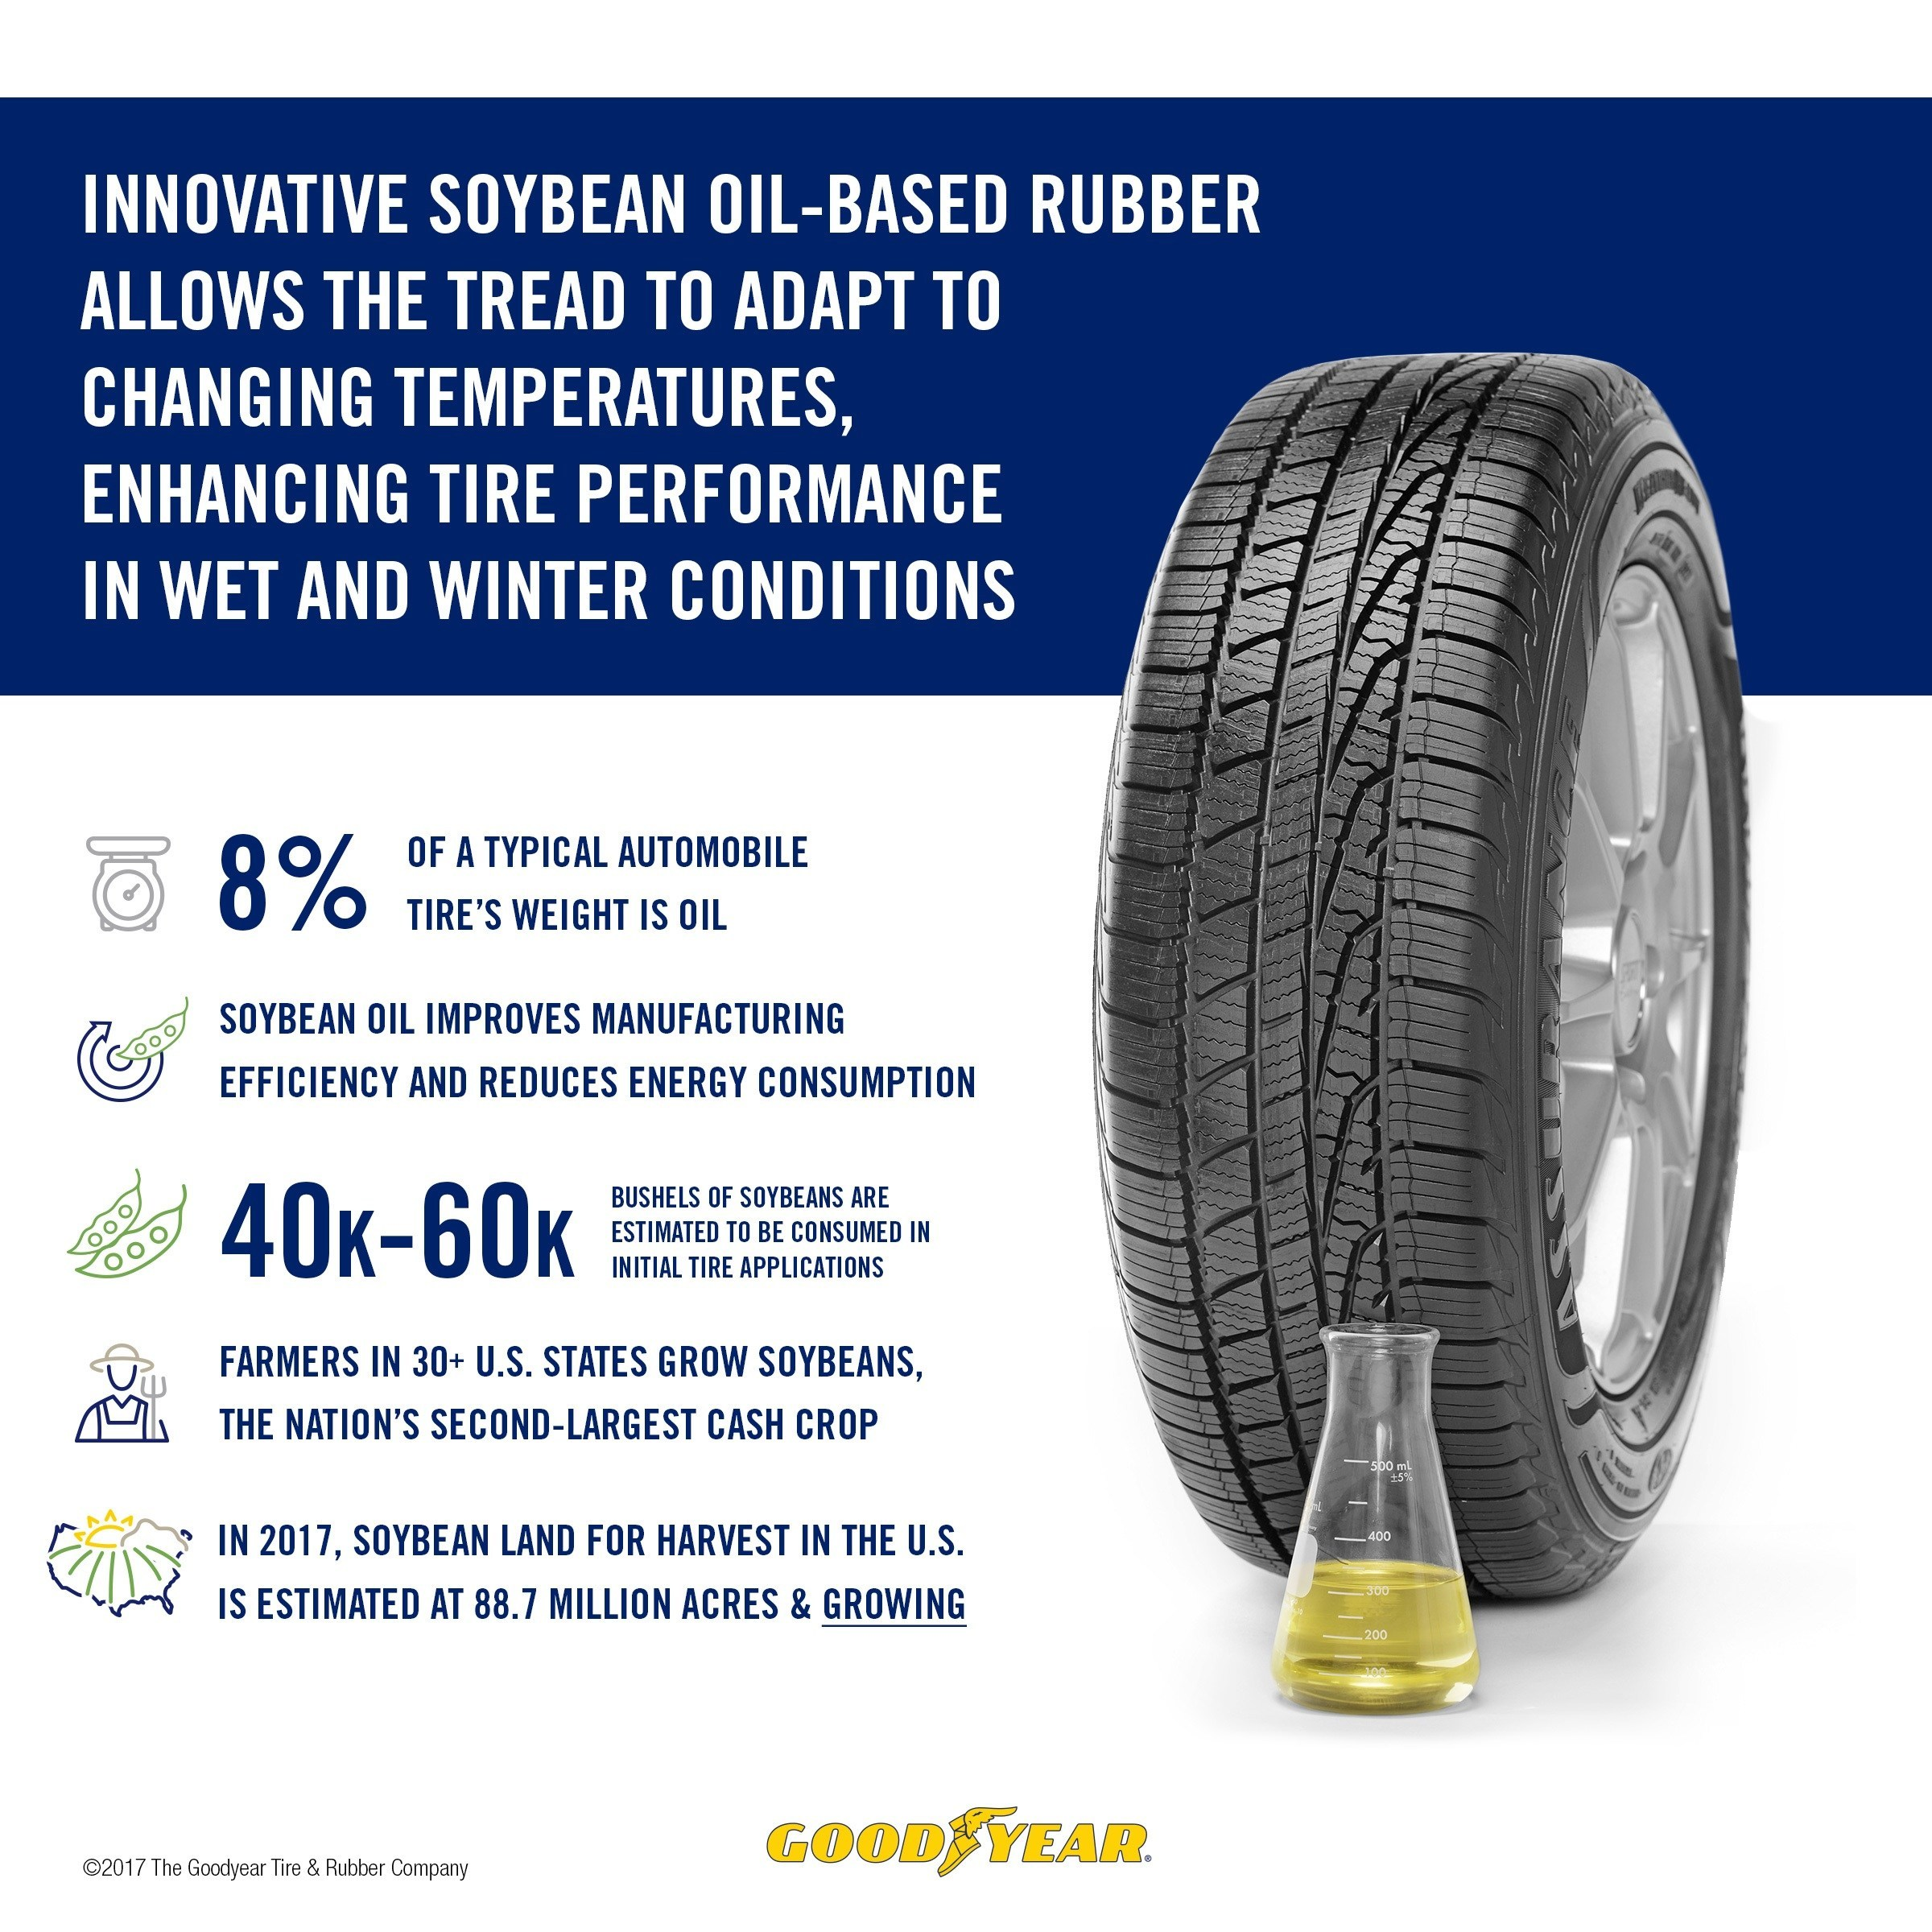 The Goodyear Tire & Rubber Company Using Soybean Oil-Based Rubber in Tires. (PRNewsfoto/The Goodyear Tire & Rubber Comp)